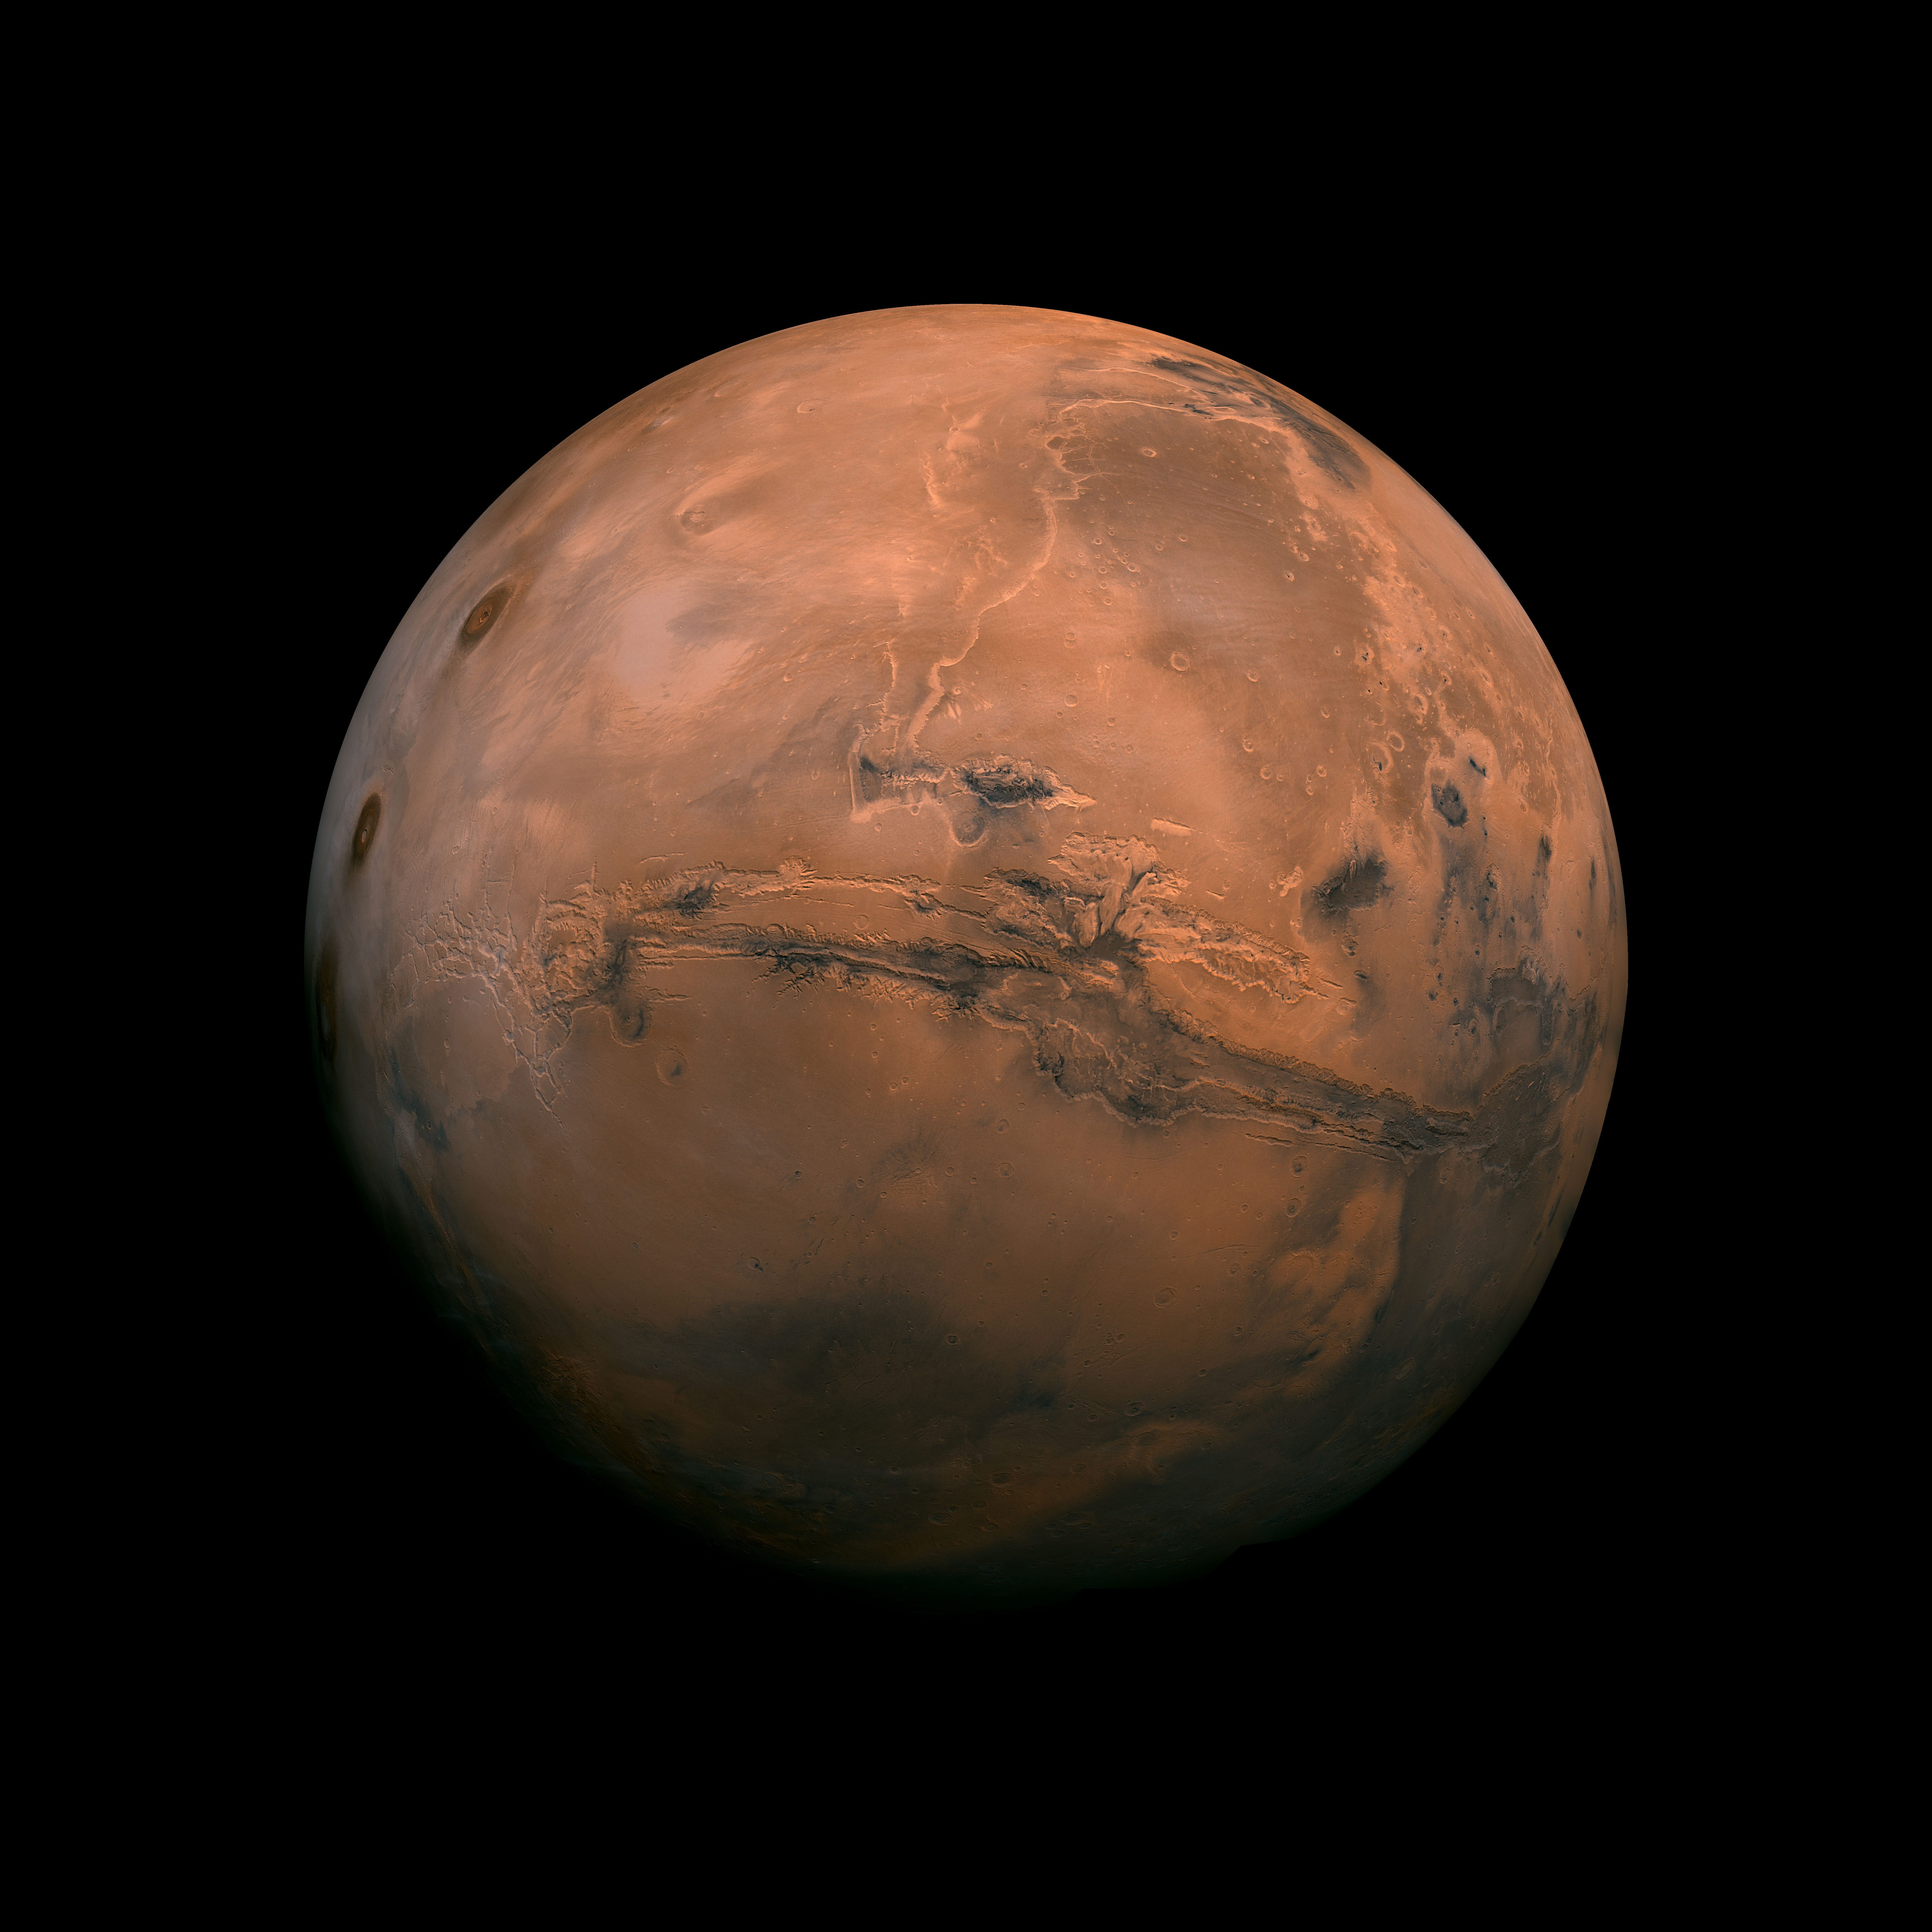 If NASA is able to overcome huge technological and medical hurdles, the agency believes it could send humans to Mars in about 25 years.